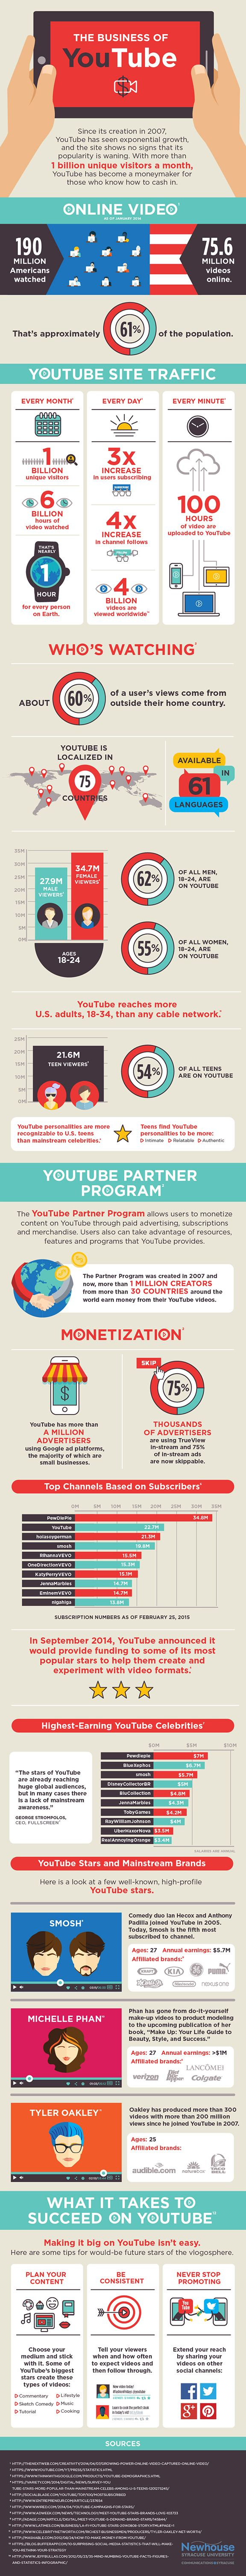 30+ Fascinating YouTube Facts That May Surprise You - #infographic #SocialMedia…